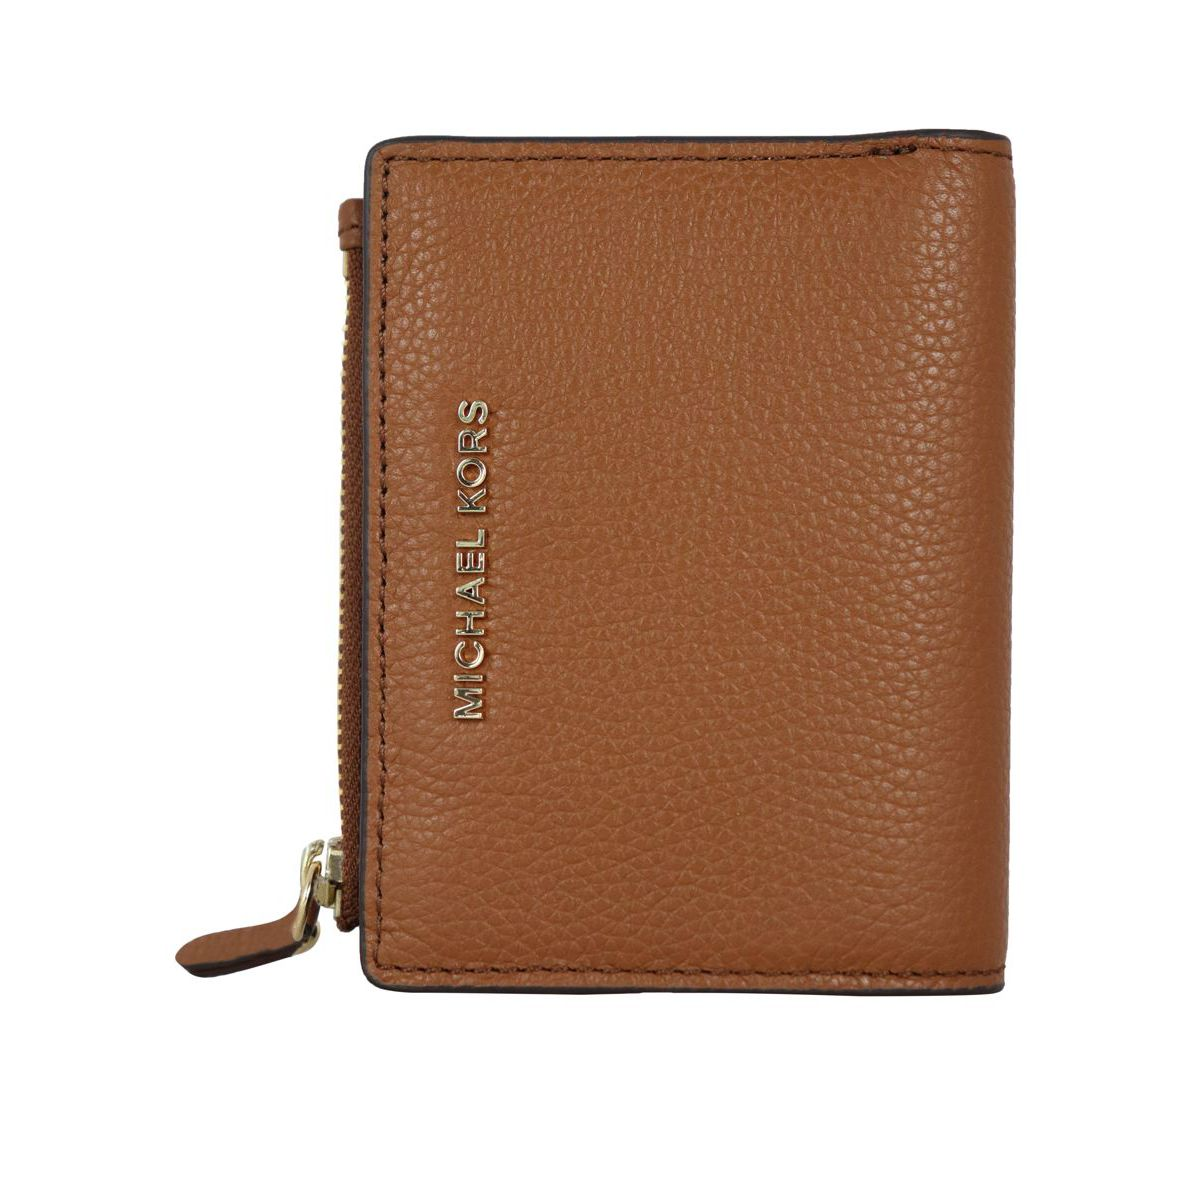 Textured leather wallet with zip and logo Leather Michael Kors